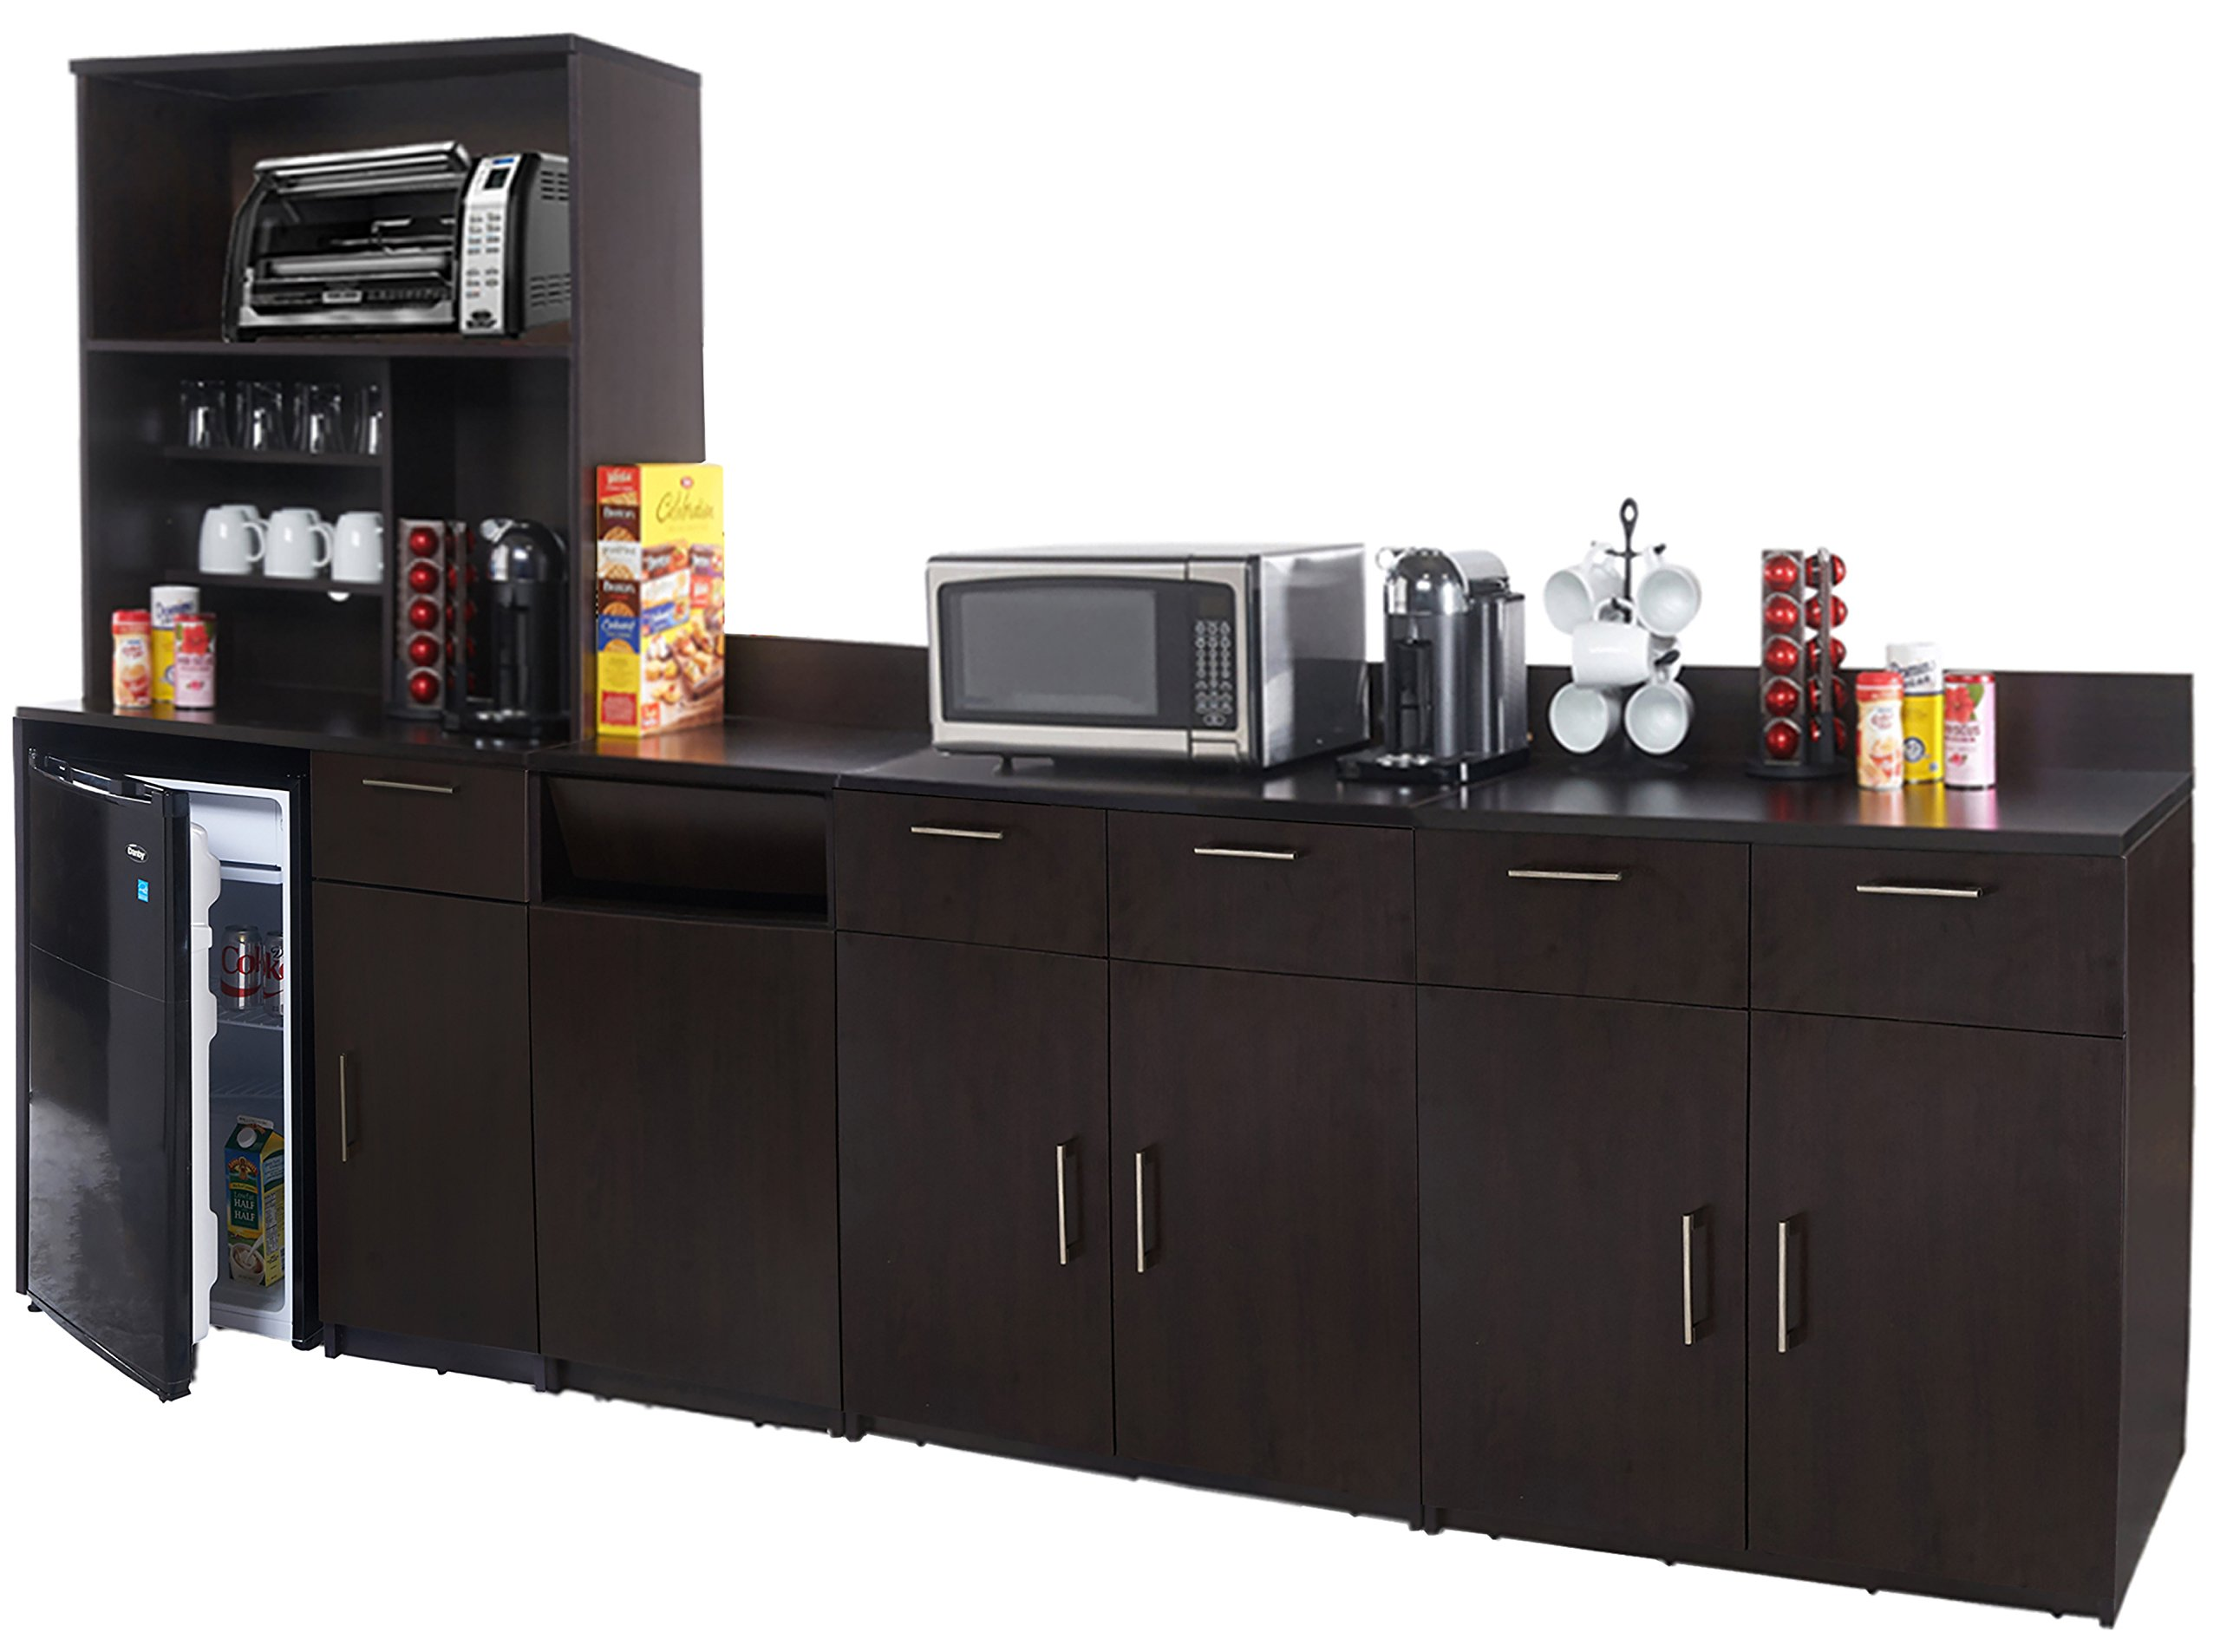 Coffee Kitchen Lunch Break Room Cabinets Model 4444 BREAKTIME 5 Piece Group Color Espresso - Factory Assembled (NOT RTA) Furniture Items ONLY. by Breaktime